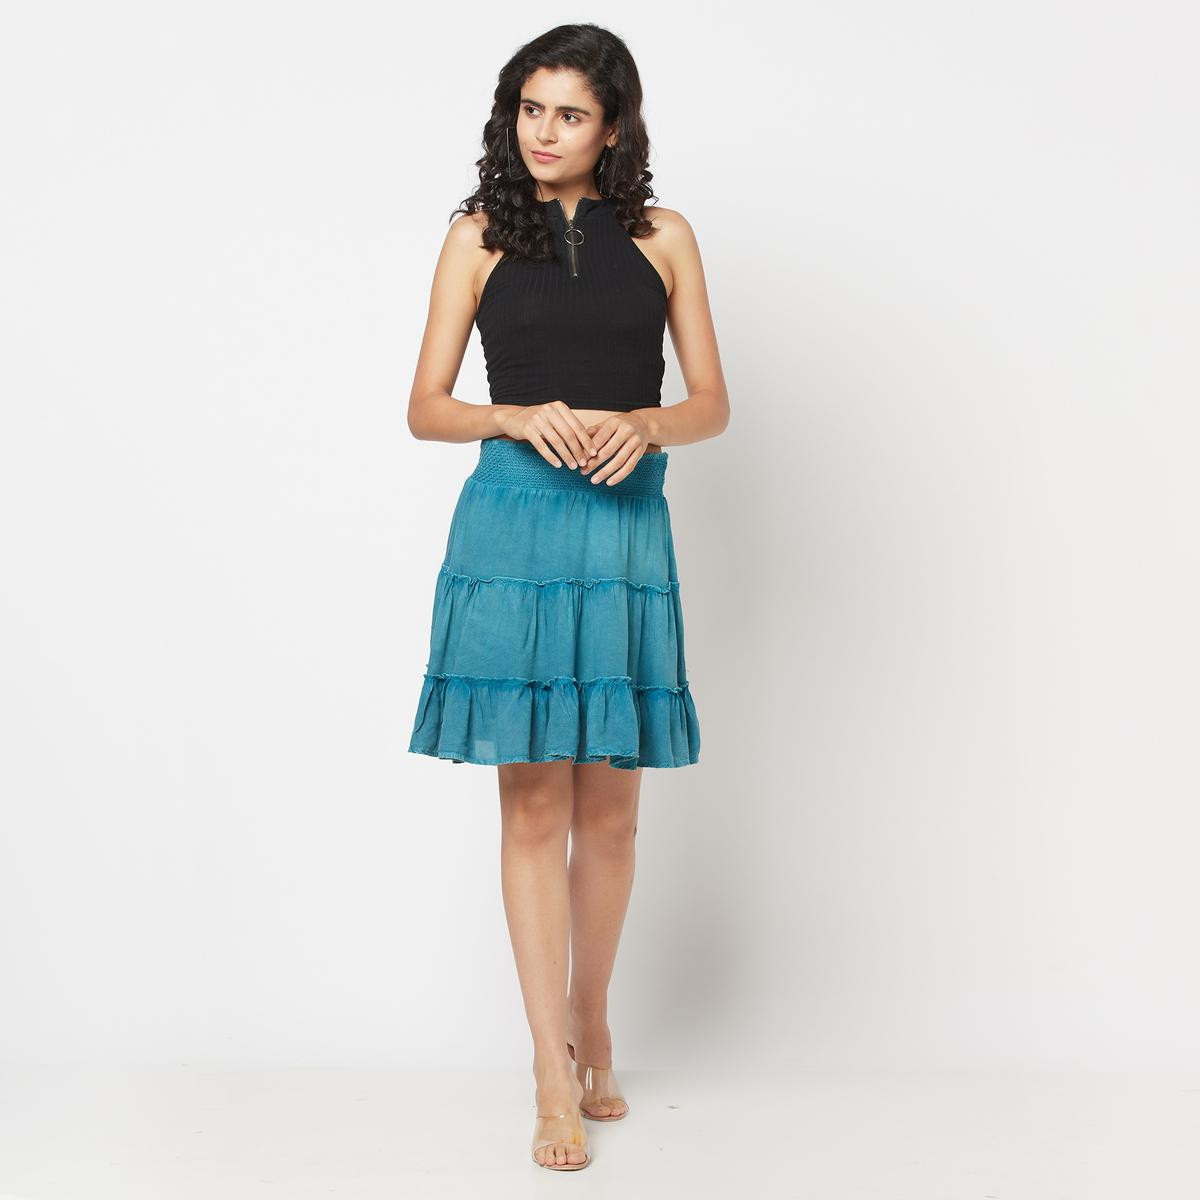 Adirav - Attractive Teal Silicon Wash Rayon Somcked Lineds Hort Skirt With Cotton Lining